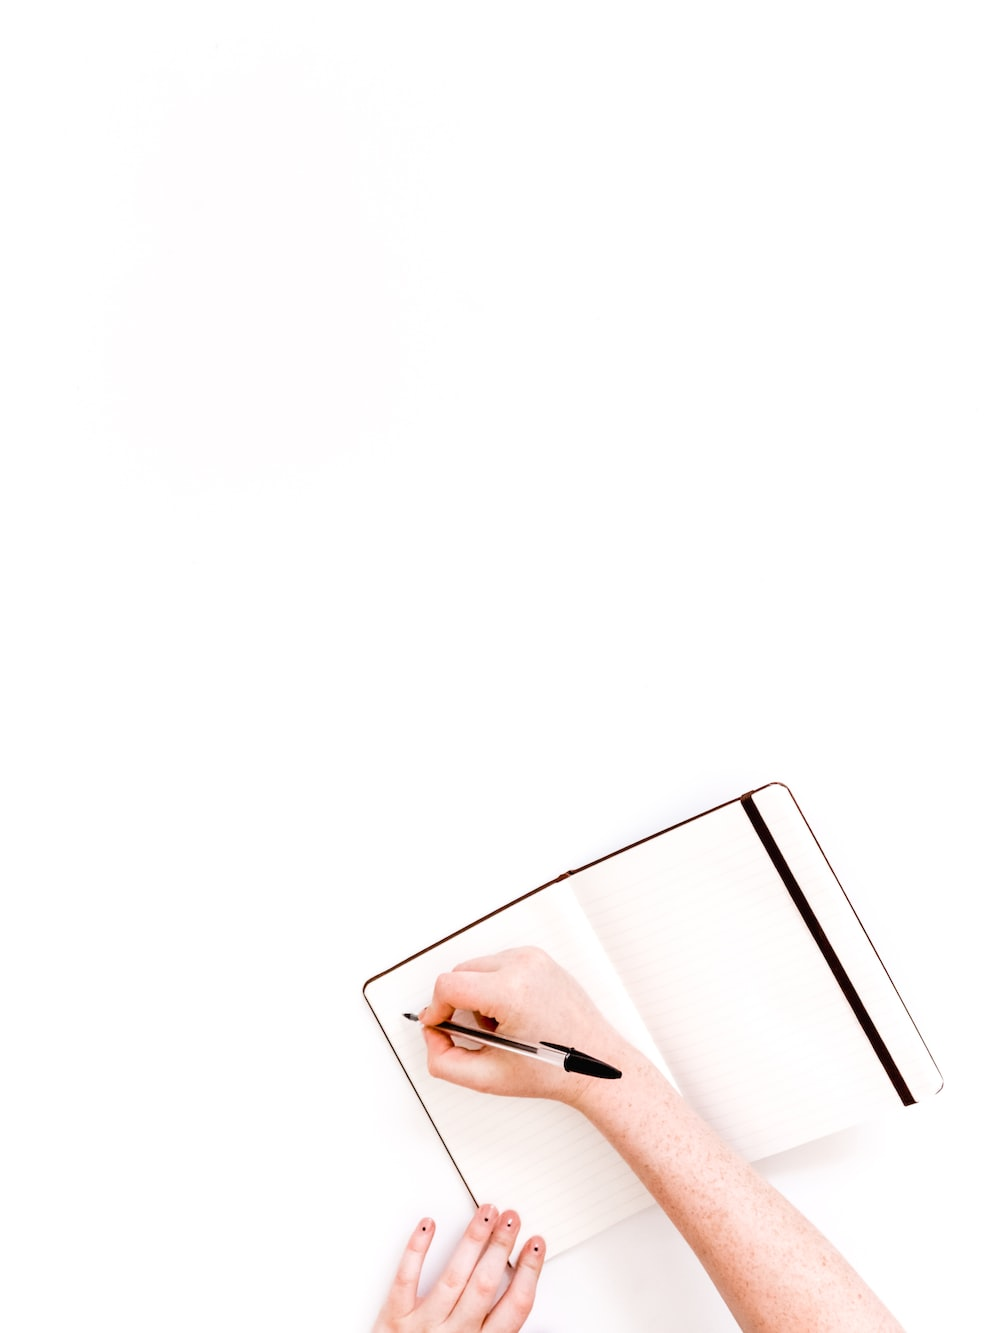 person holding ballpoint and writing on the book